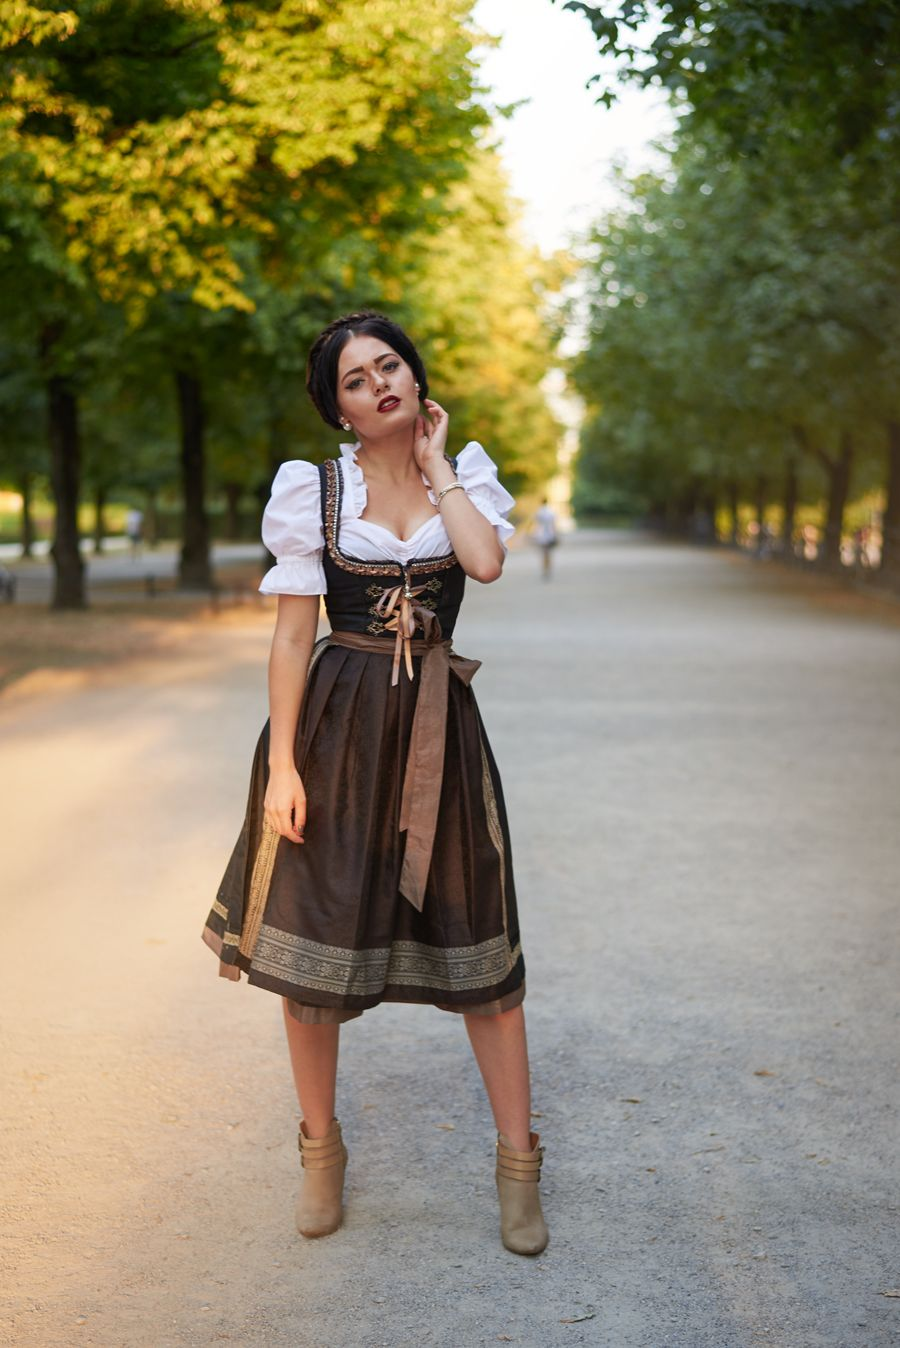 Fashion Blog Fashionblogger Munchen Deutschland Munich Oktoberfest